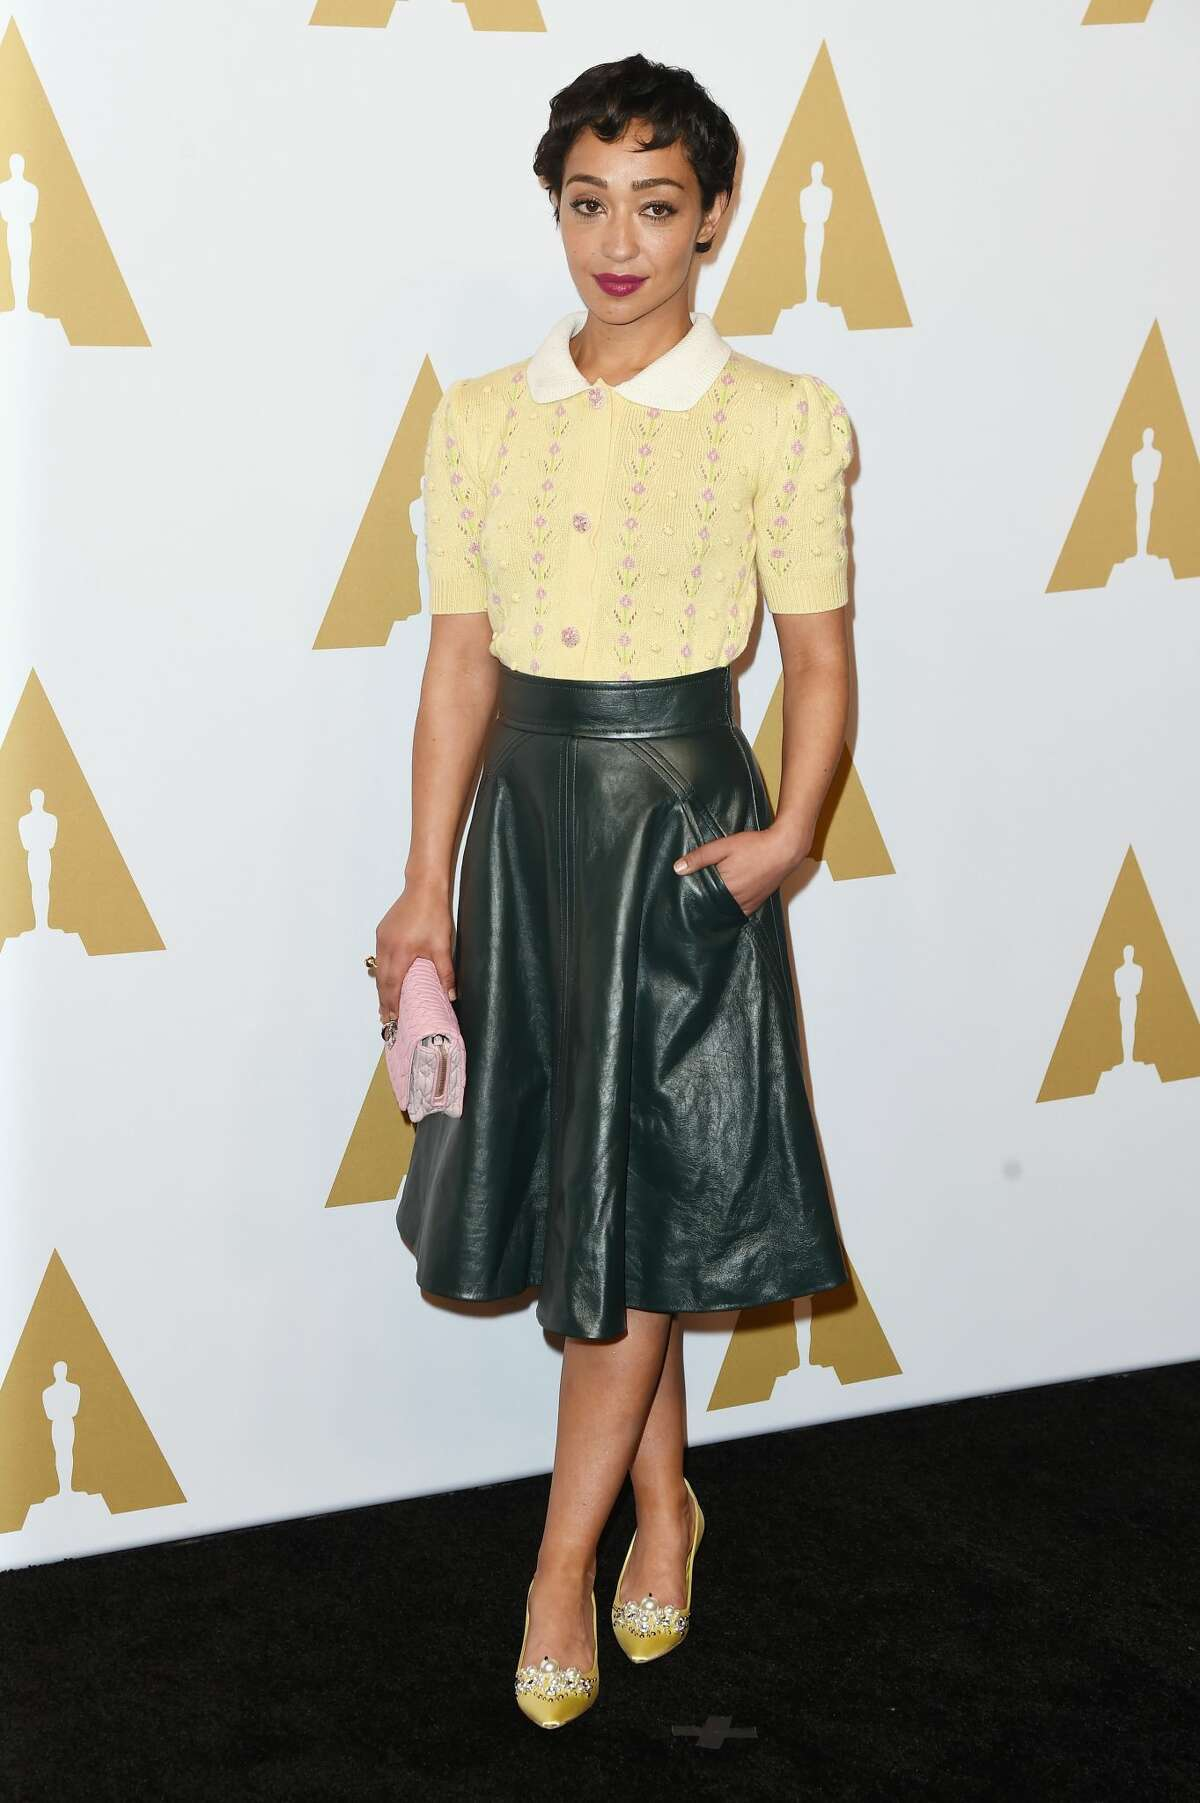 Ruth Negga Best:Negga kicks up this daytime look with a black leather midi skirt. The actress's jeweled yellow shoes are show stoppers.